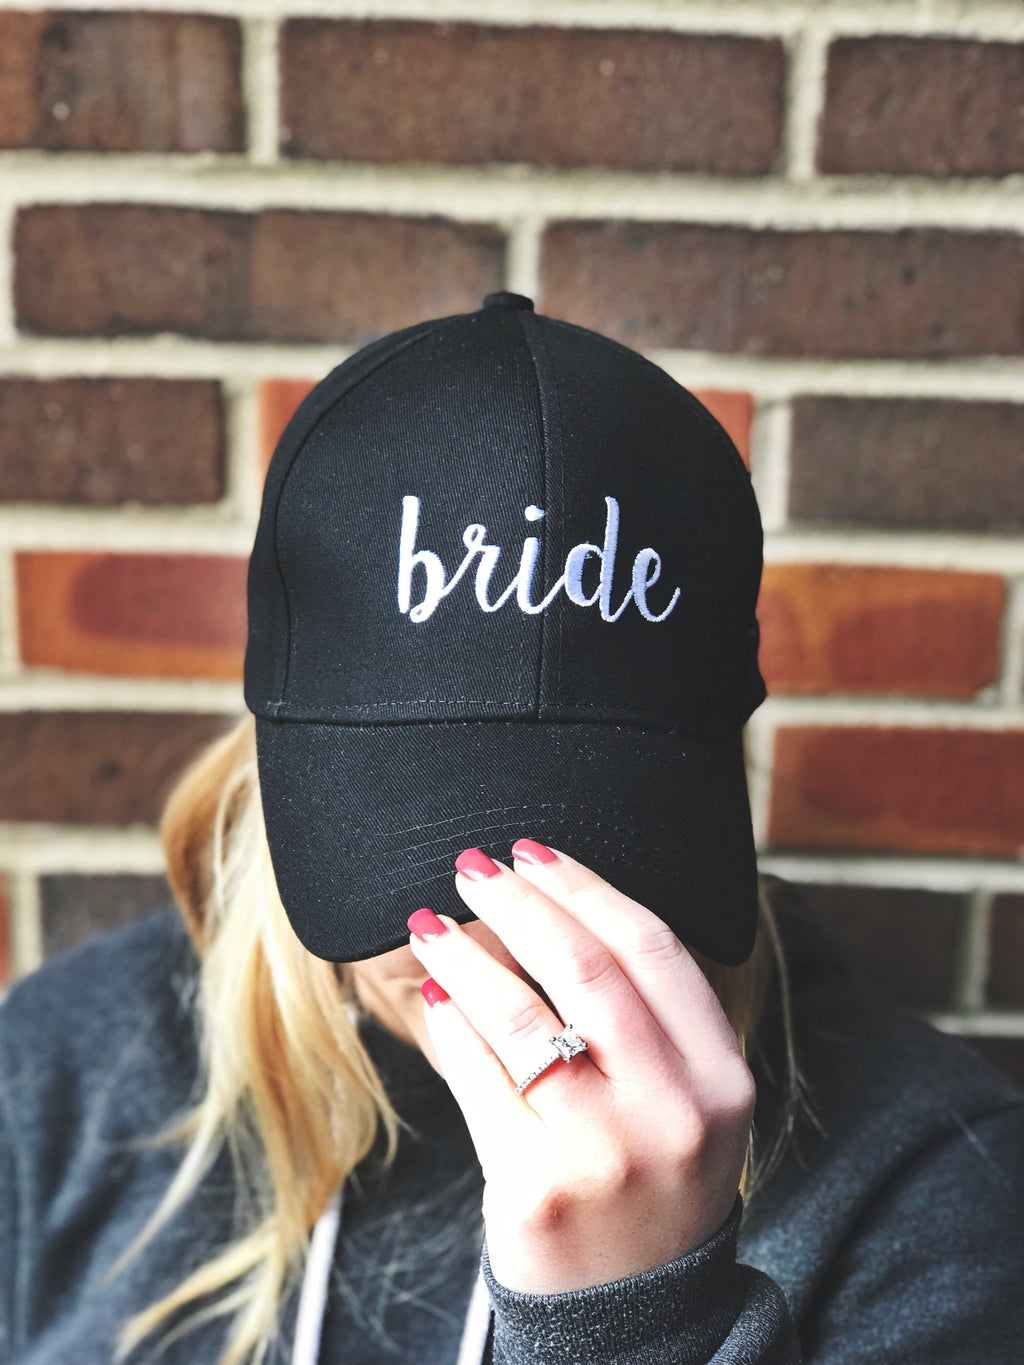 C.C Embroidered Baseball Cap - Bride (Black)